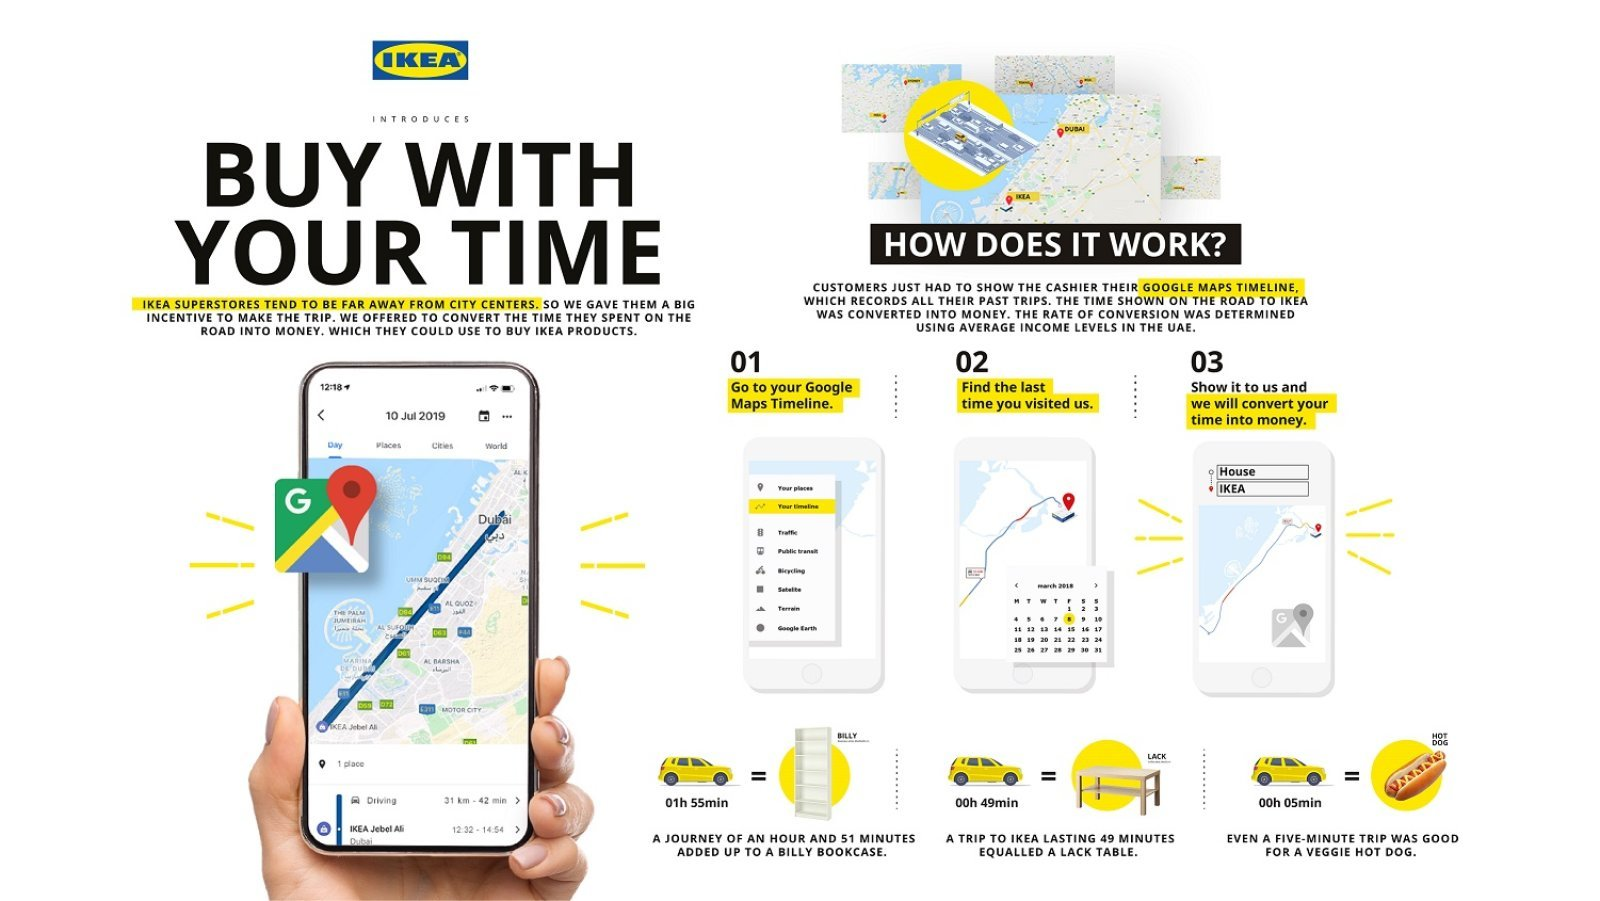 IKEA Buy With Your Time Campaign lets Customers Pay Using Time - Dubaisavers